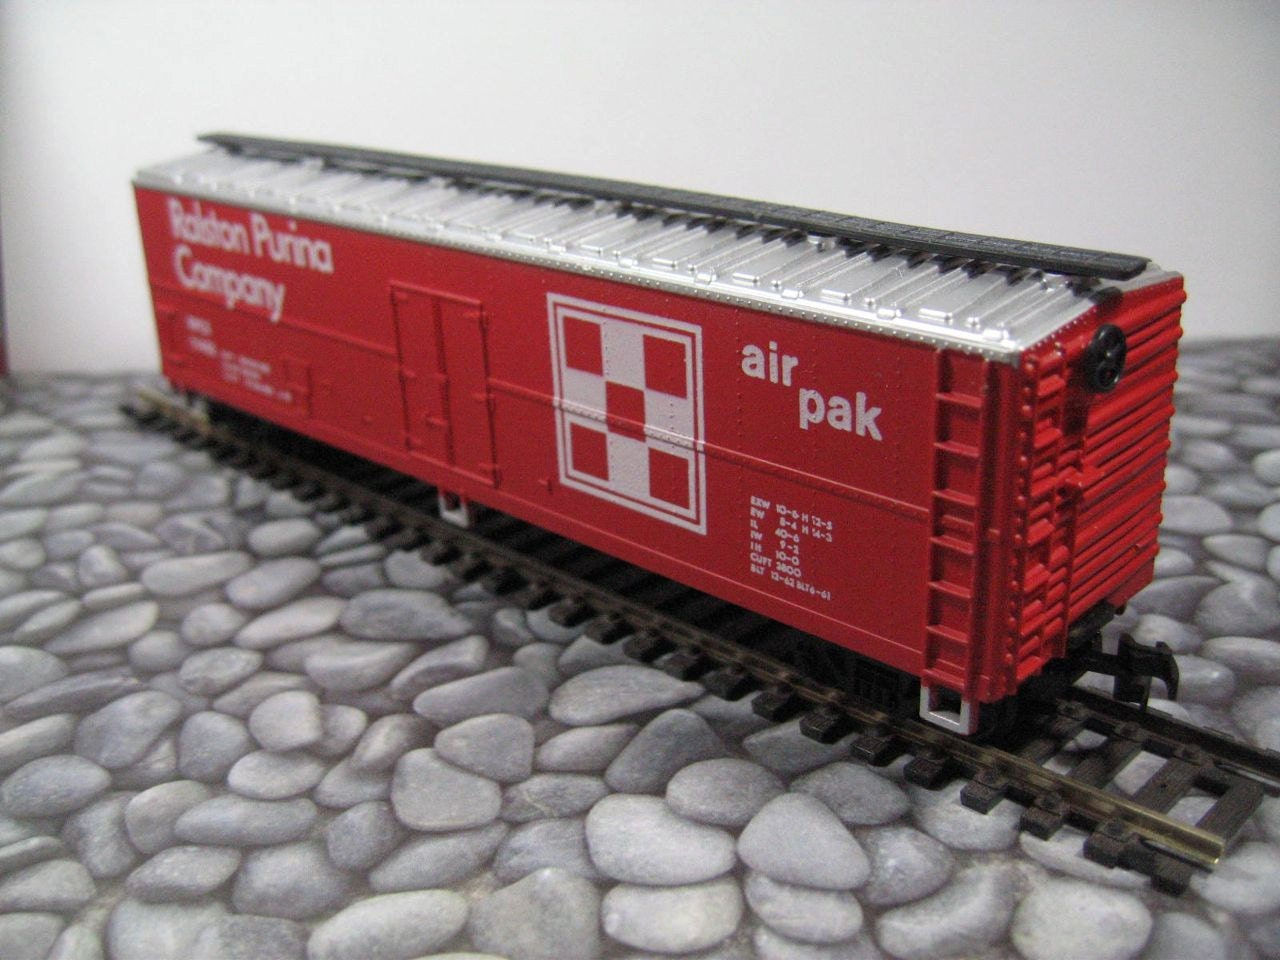 Man Cave Store Norcross : Ralston purina air pak foot box car by thevintageshop